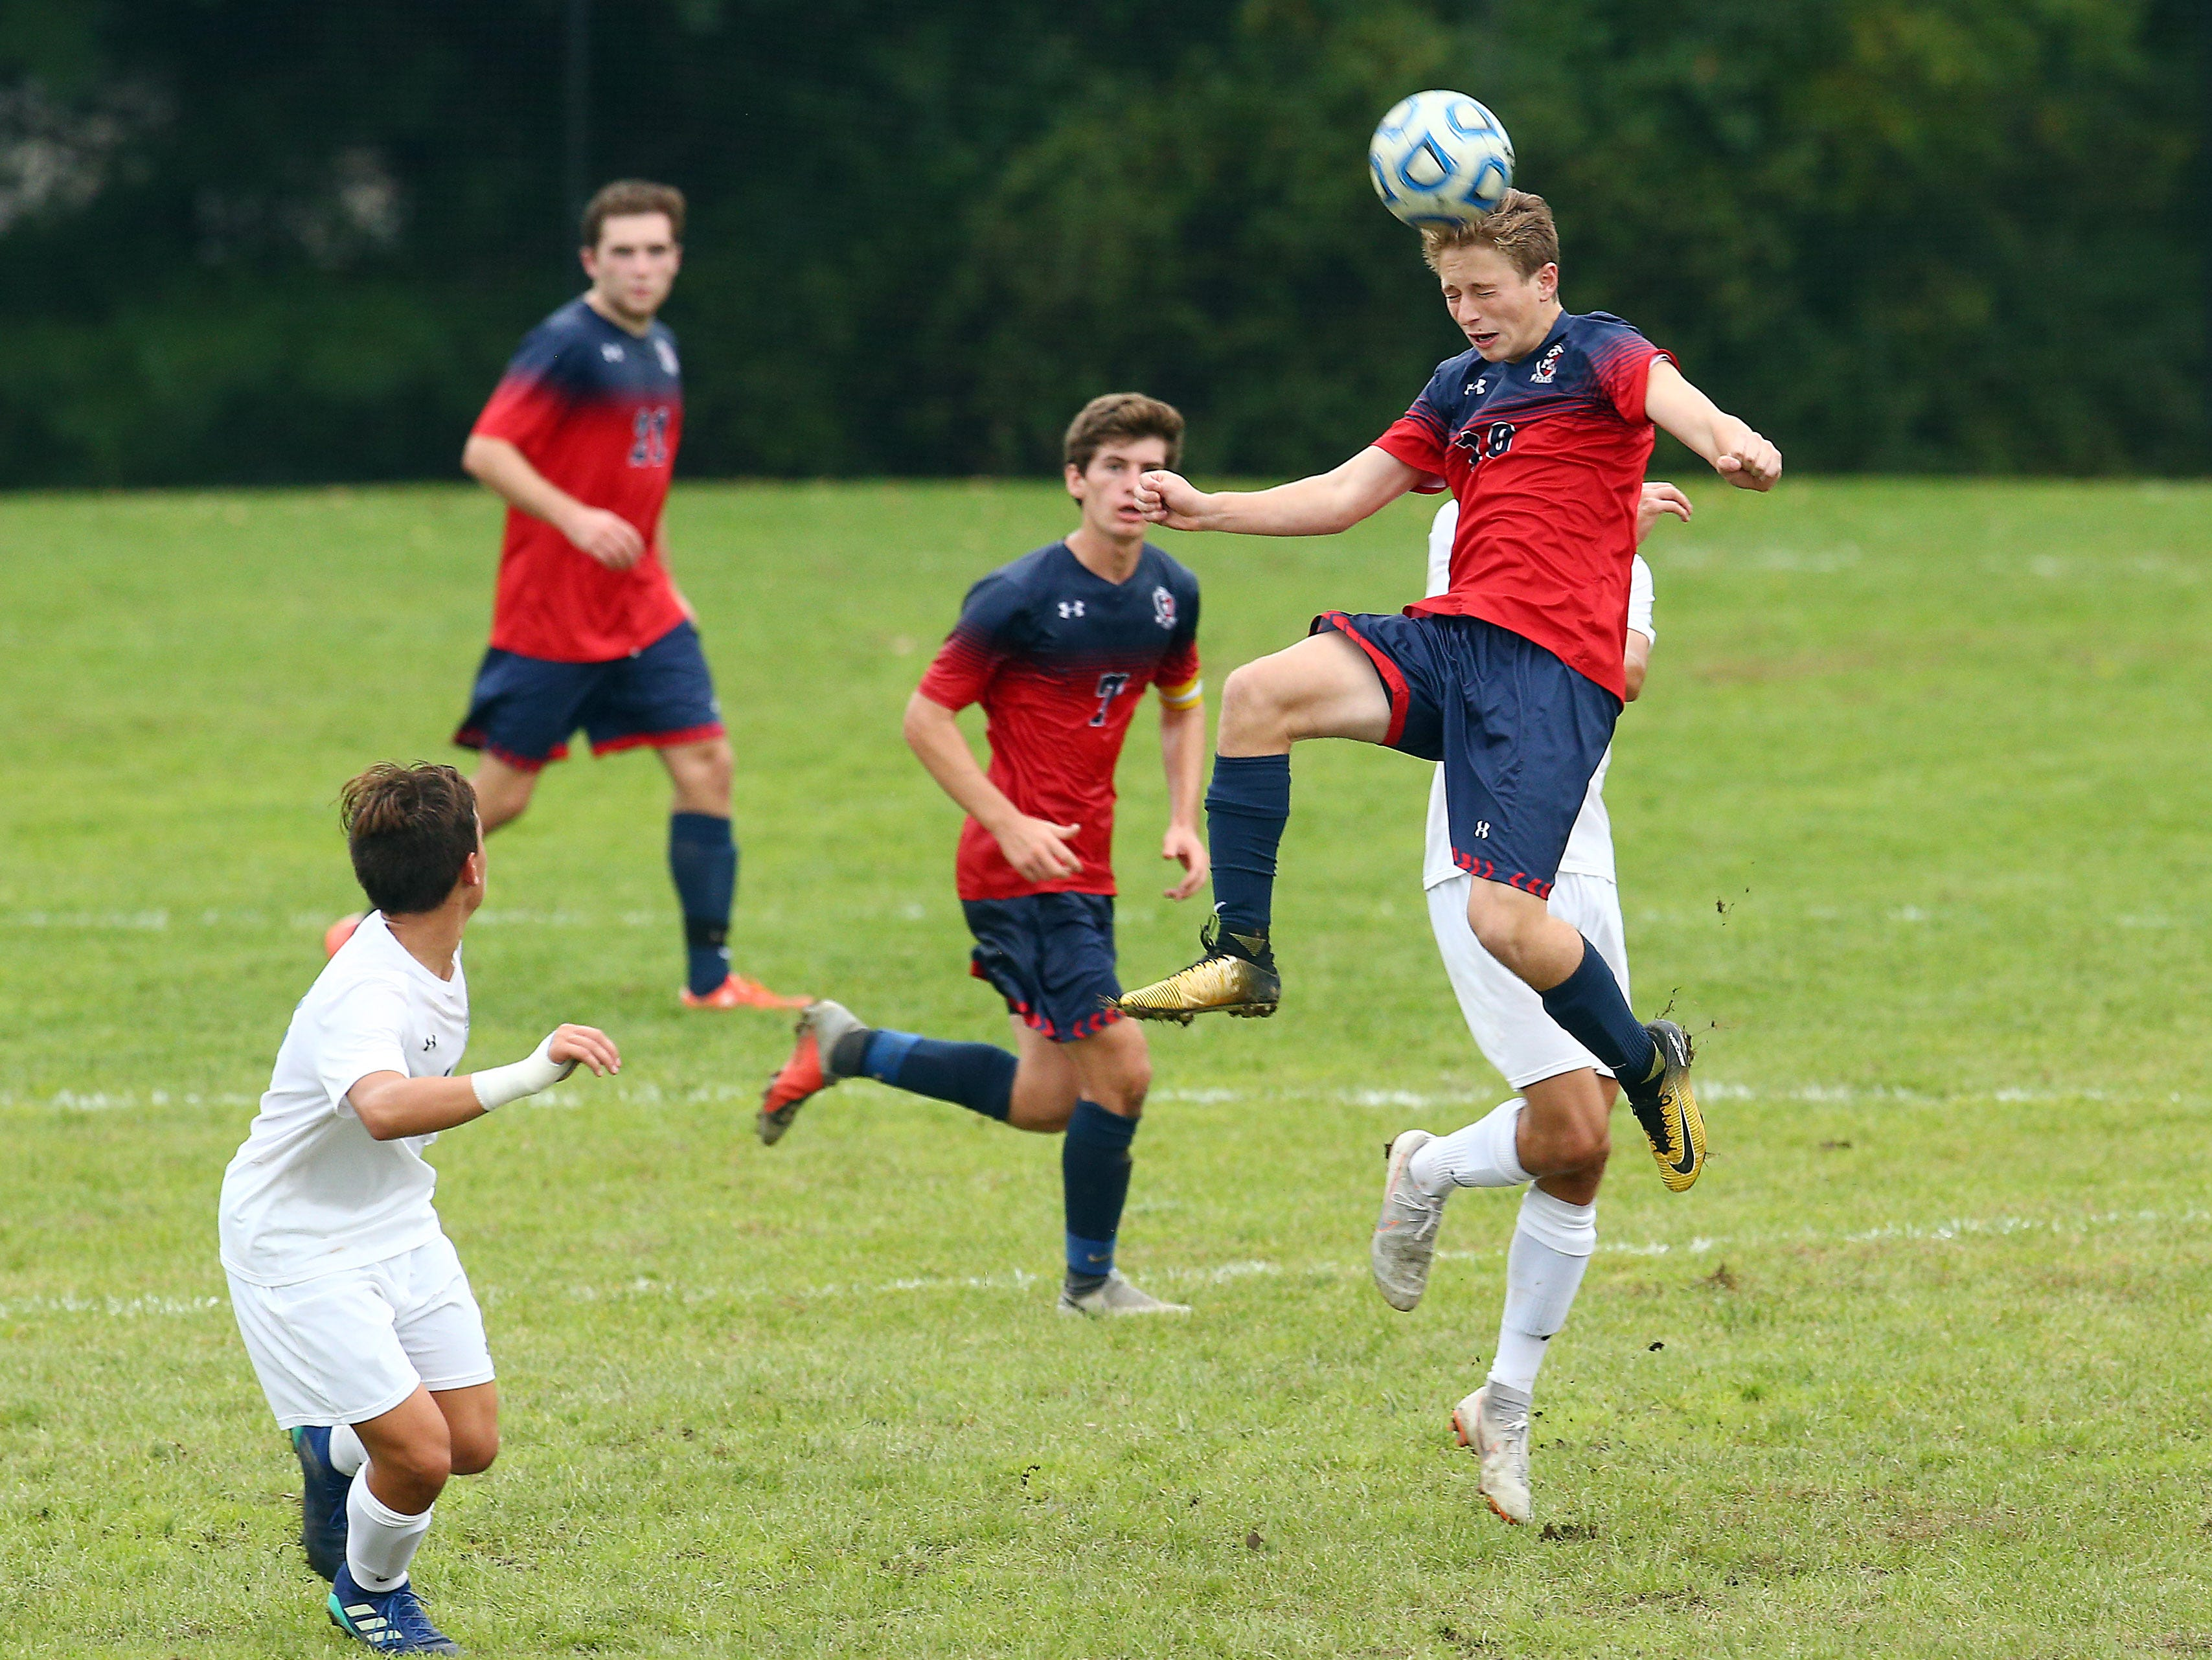 Mendham's Zach Skuraton heads the ball vs. Chatham during their NJAC-American boys soccer match. October 2, 2018, Mendham, NJ